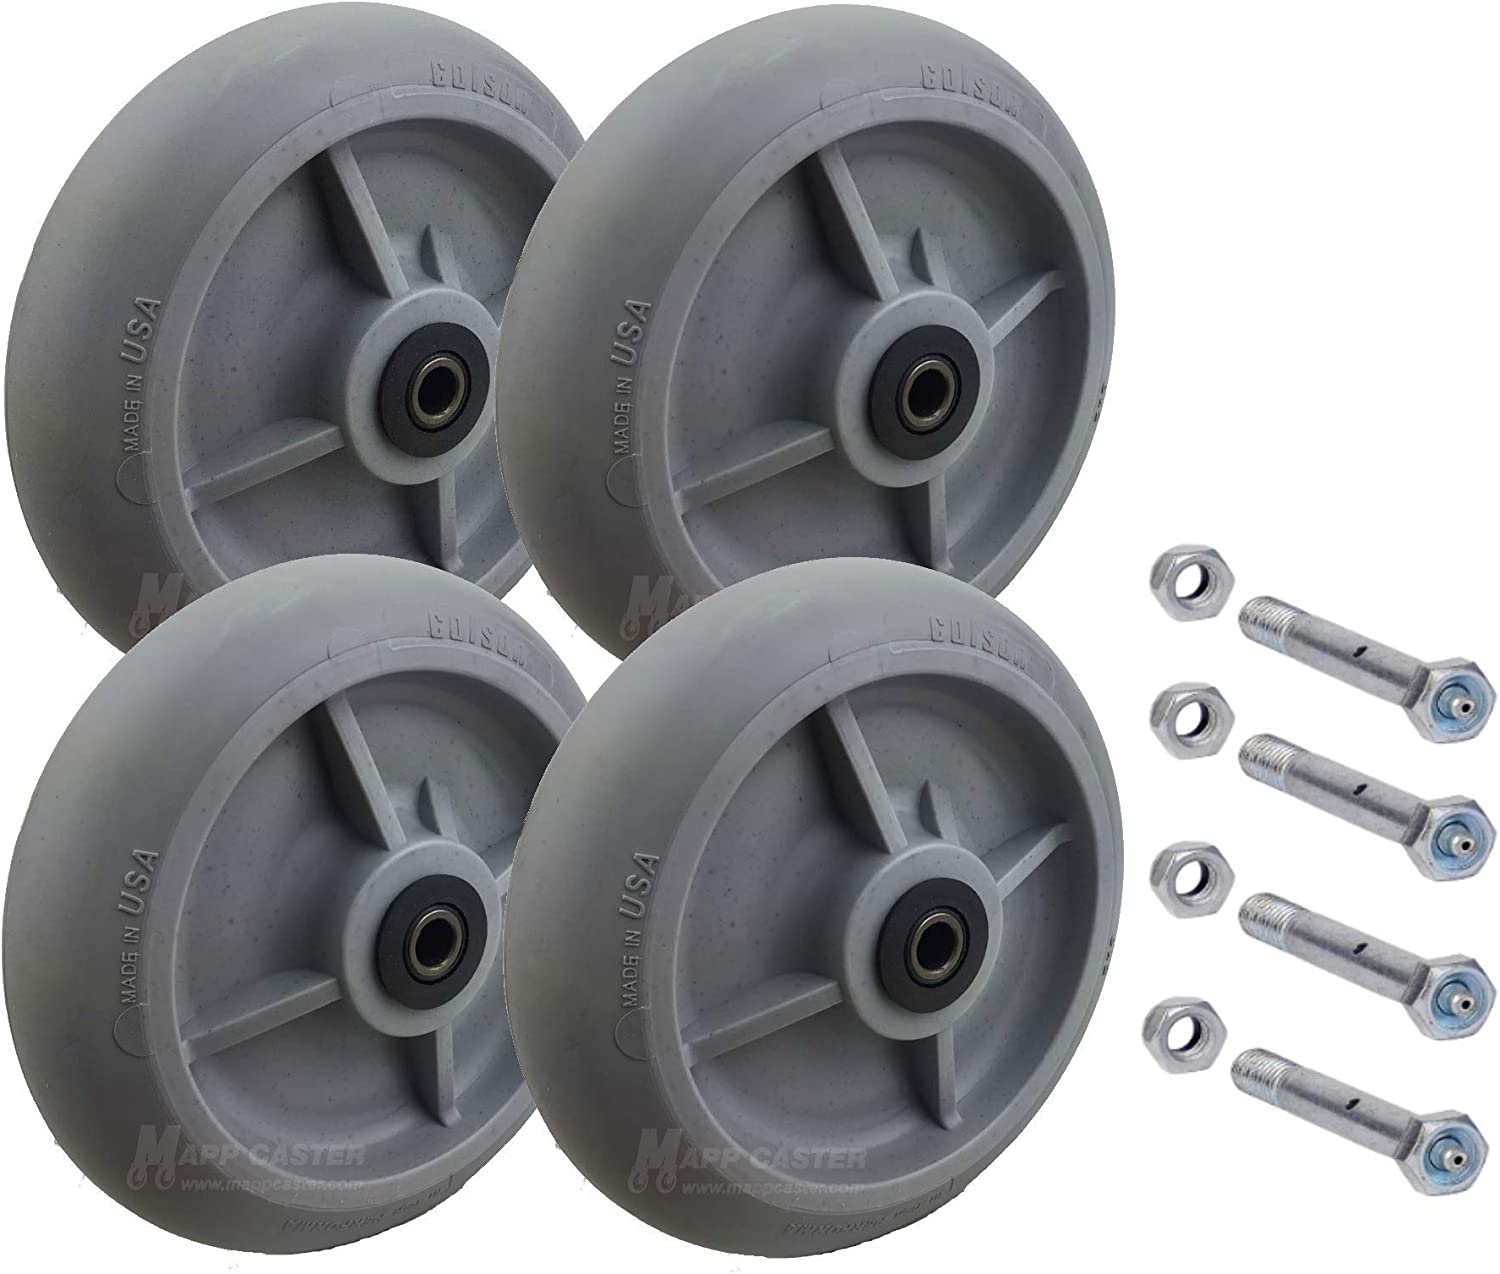 USA Made Drywall /& Sheetrock Dolly Wheels with Axles Set of 4